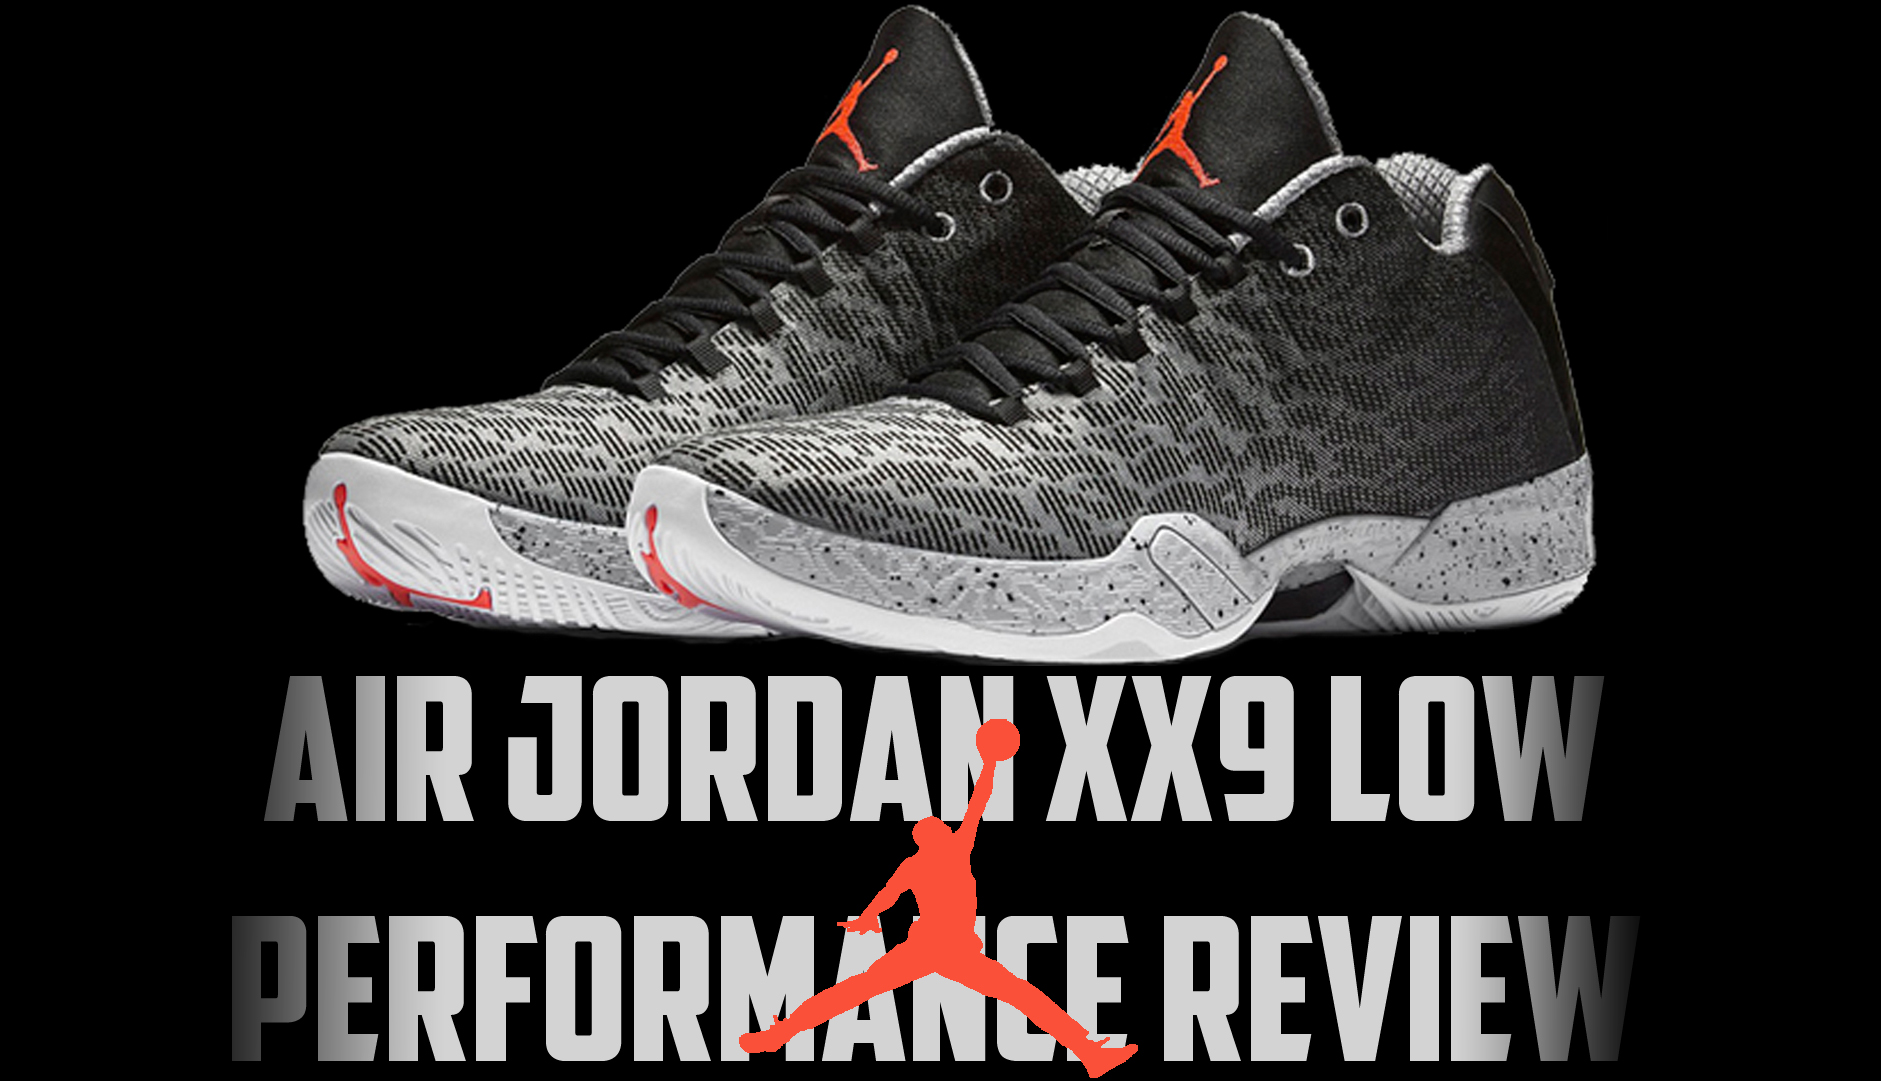 promo code fe2a6 c135b Air Jordan XX9 Low Performance Review - WearTesters